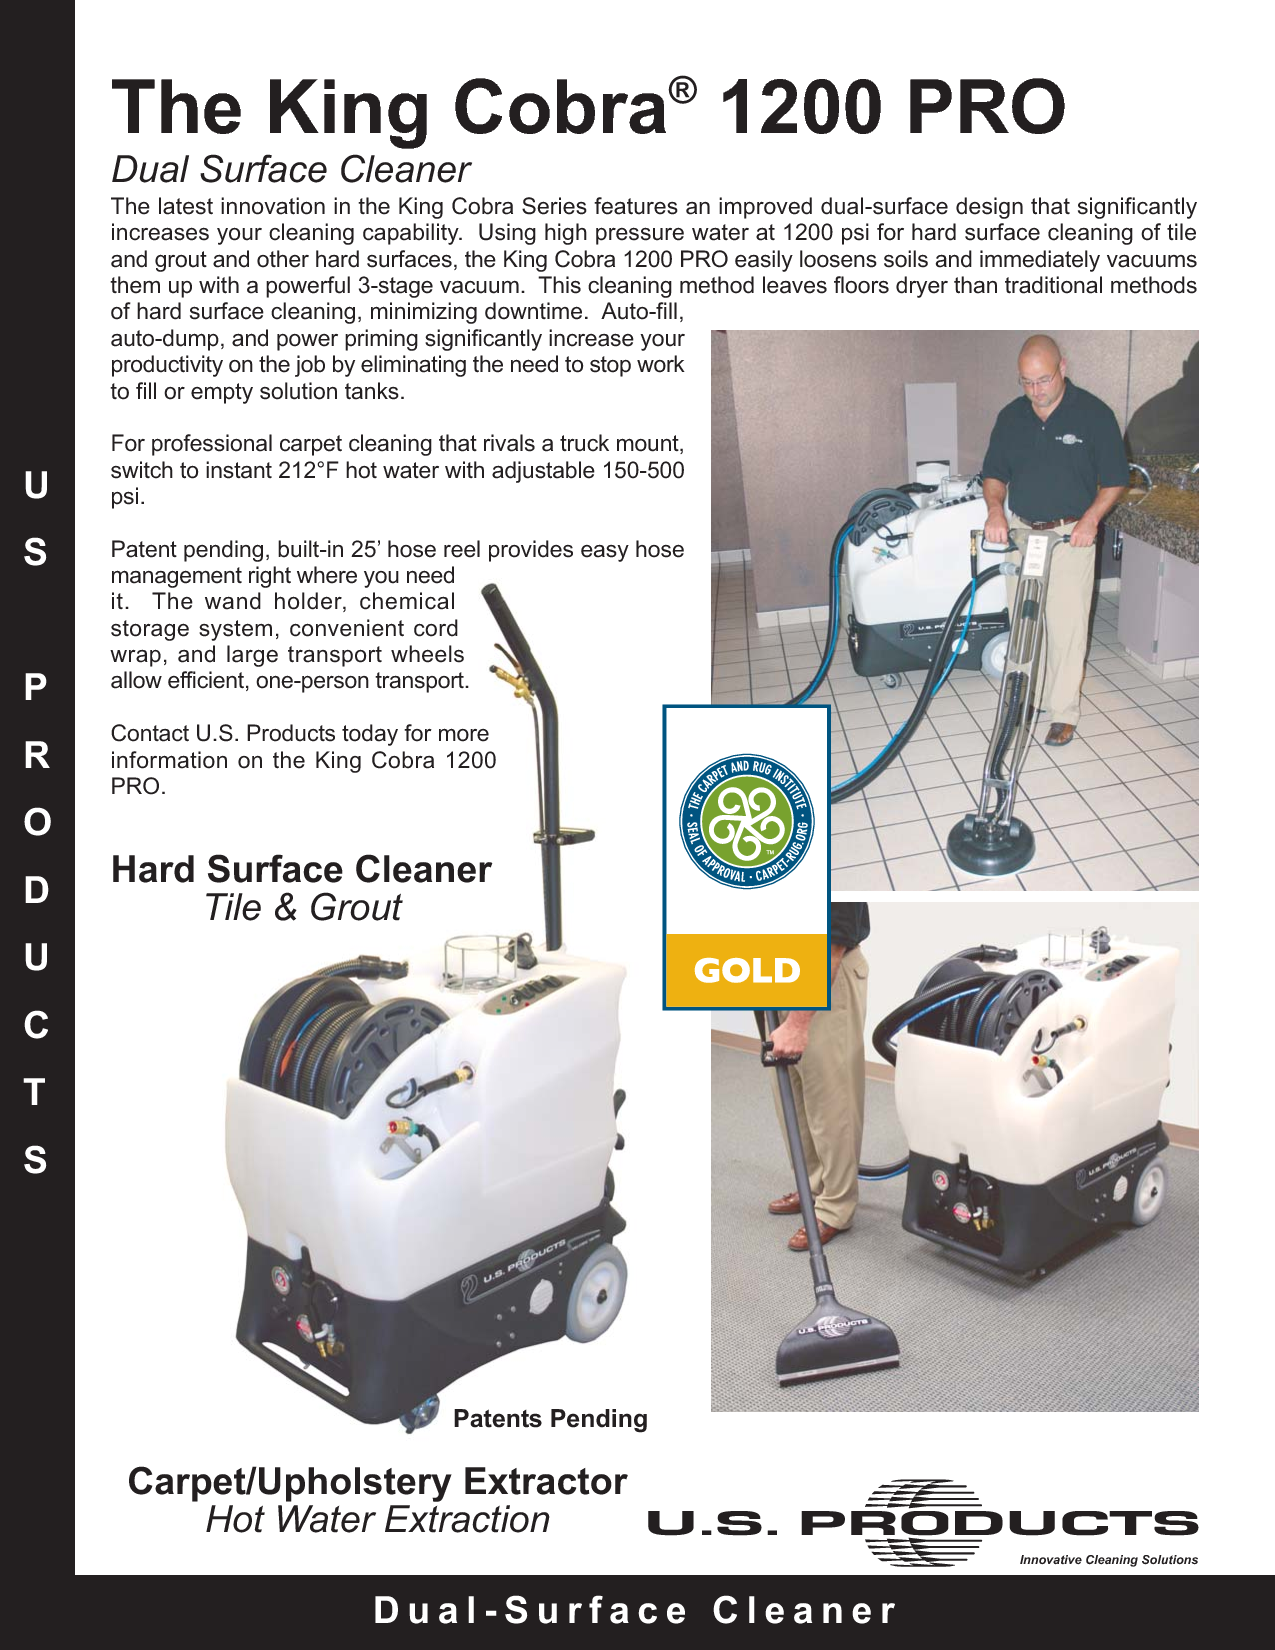 Hot Water Extraction Carpet Cleaning Machines Al Carpet